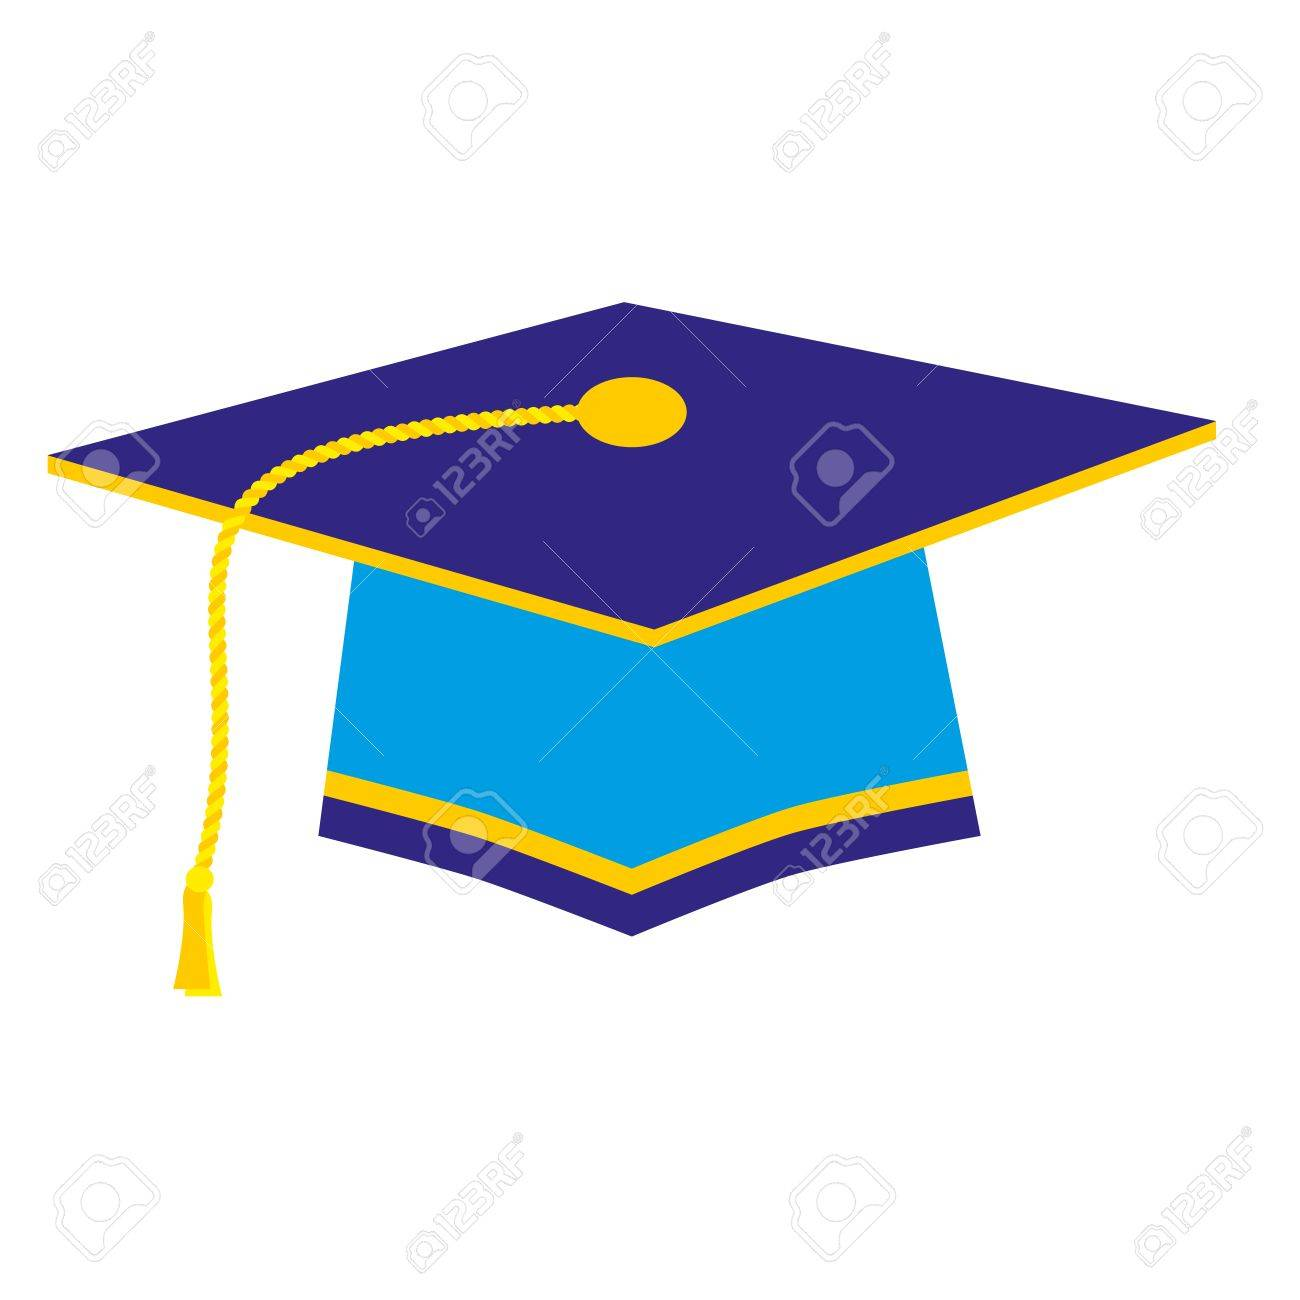 Blue Graduation Cap With Gold Tassel Royalty Free Cliparts Vectors